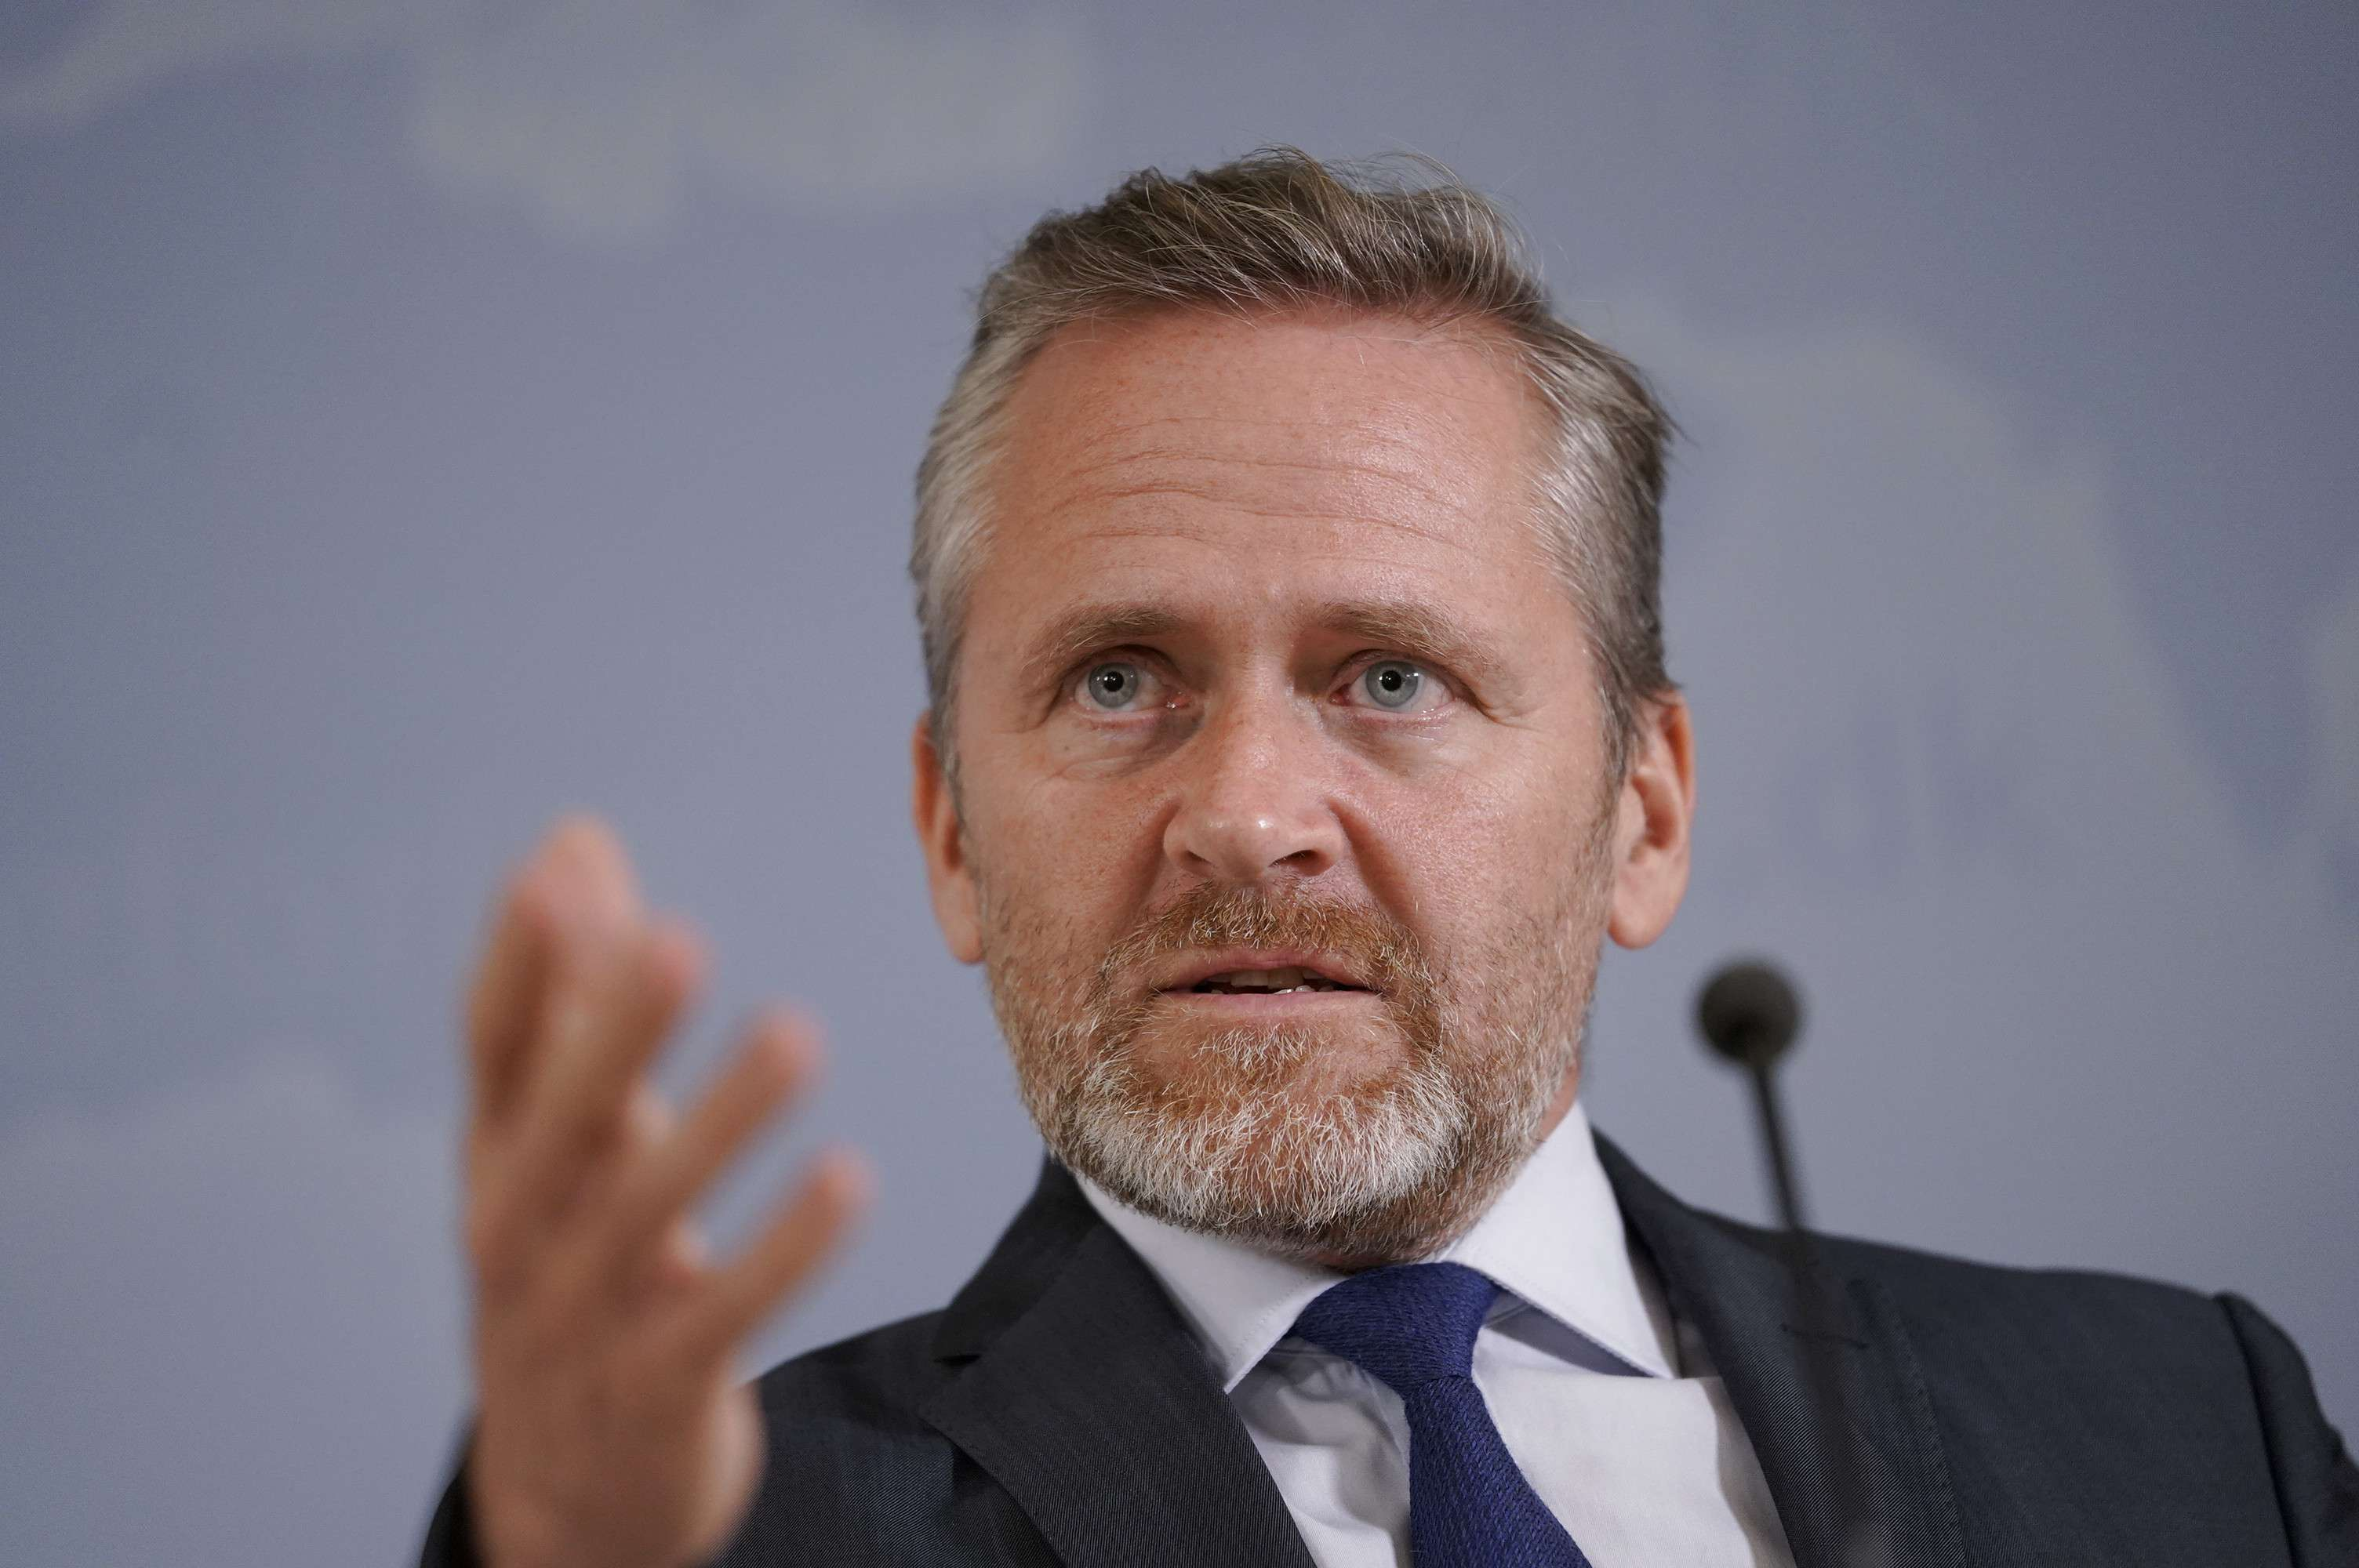 Danish Foreign Minister Anders Samuelsen gives a press conference in Copenhagen. (Reuters)